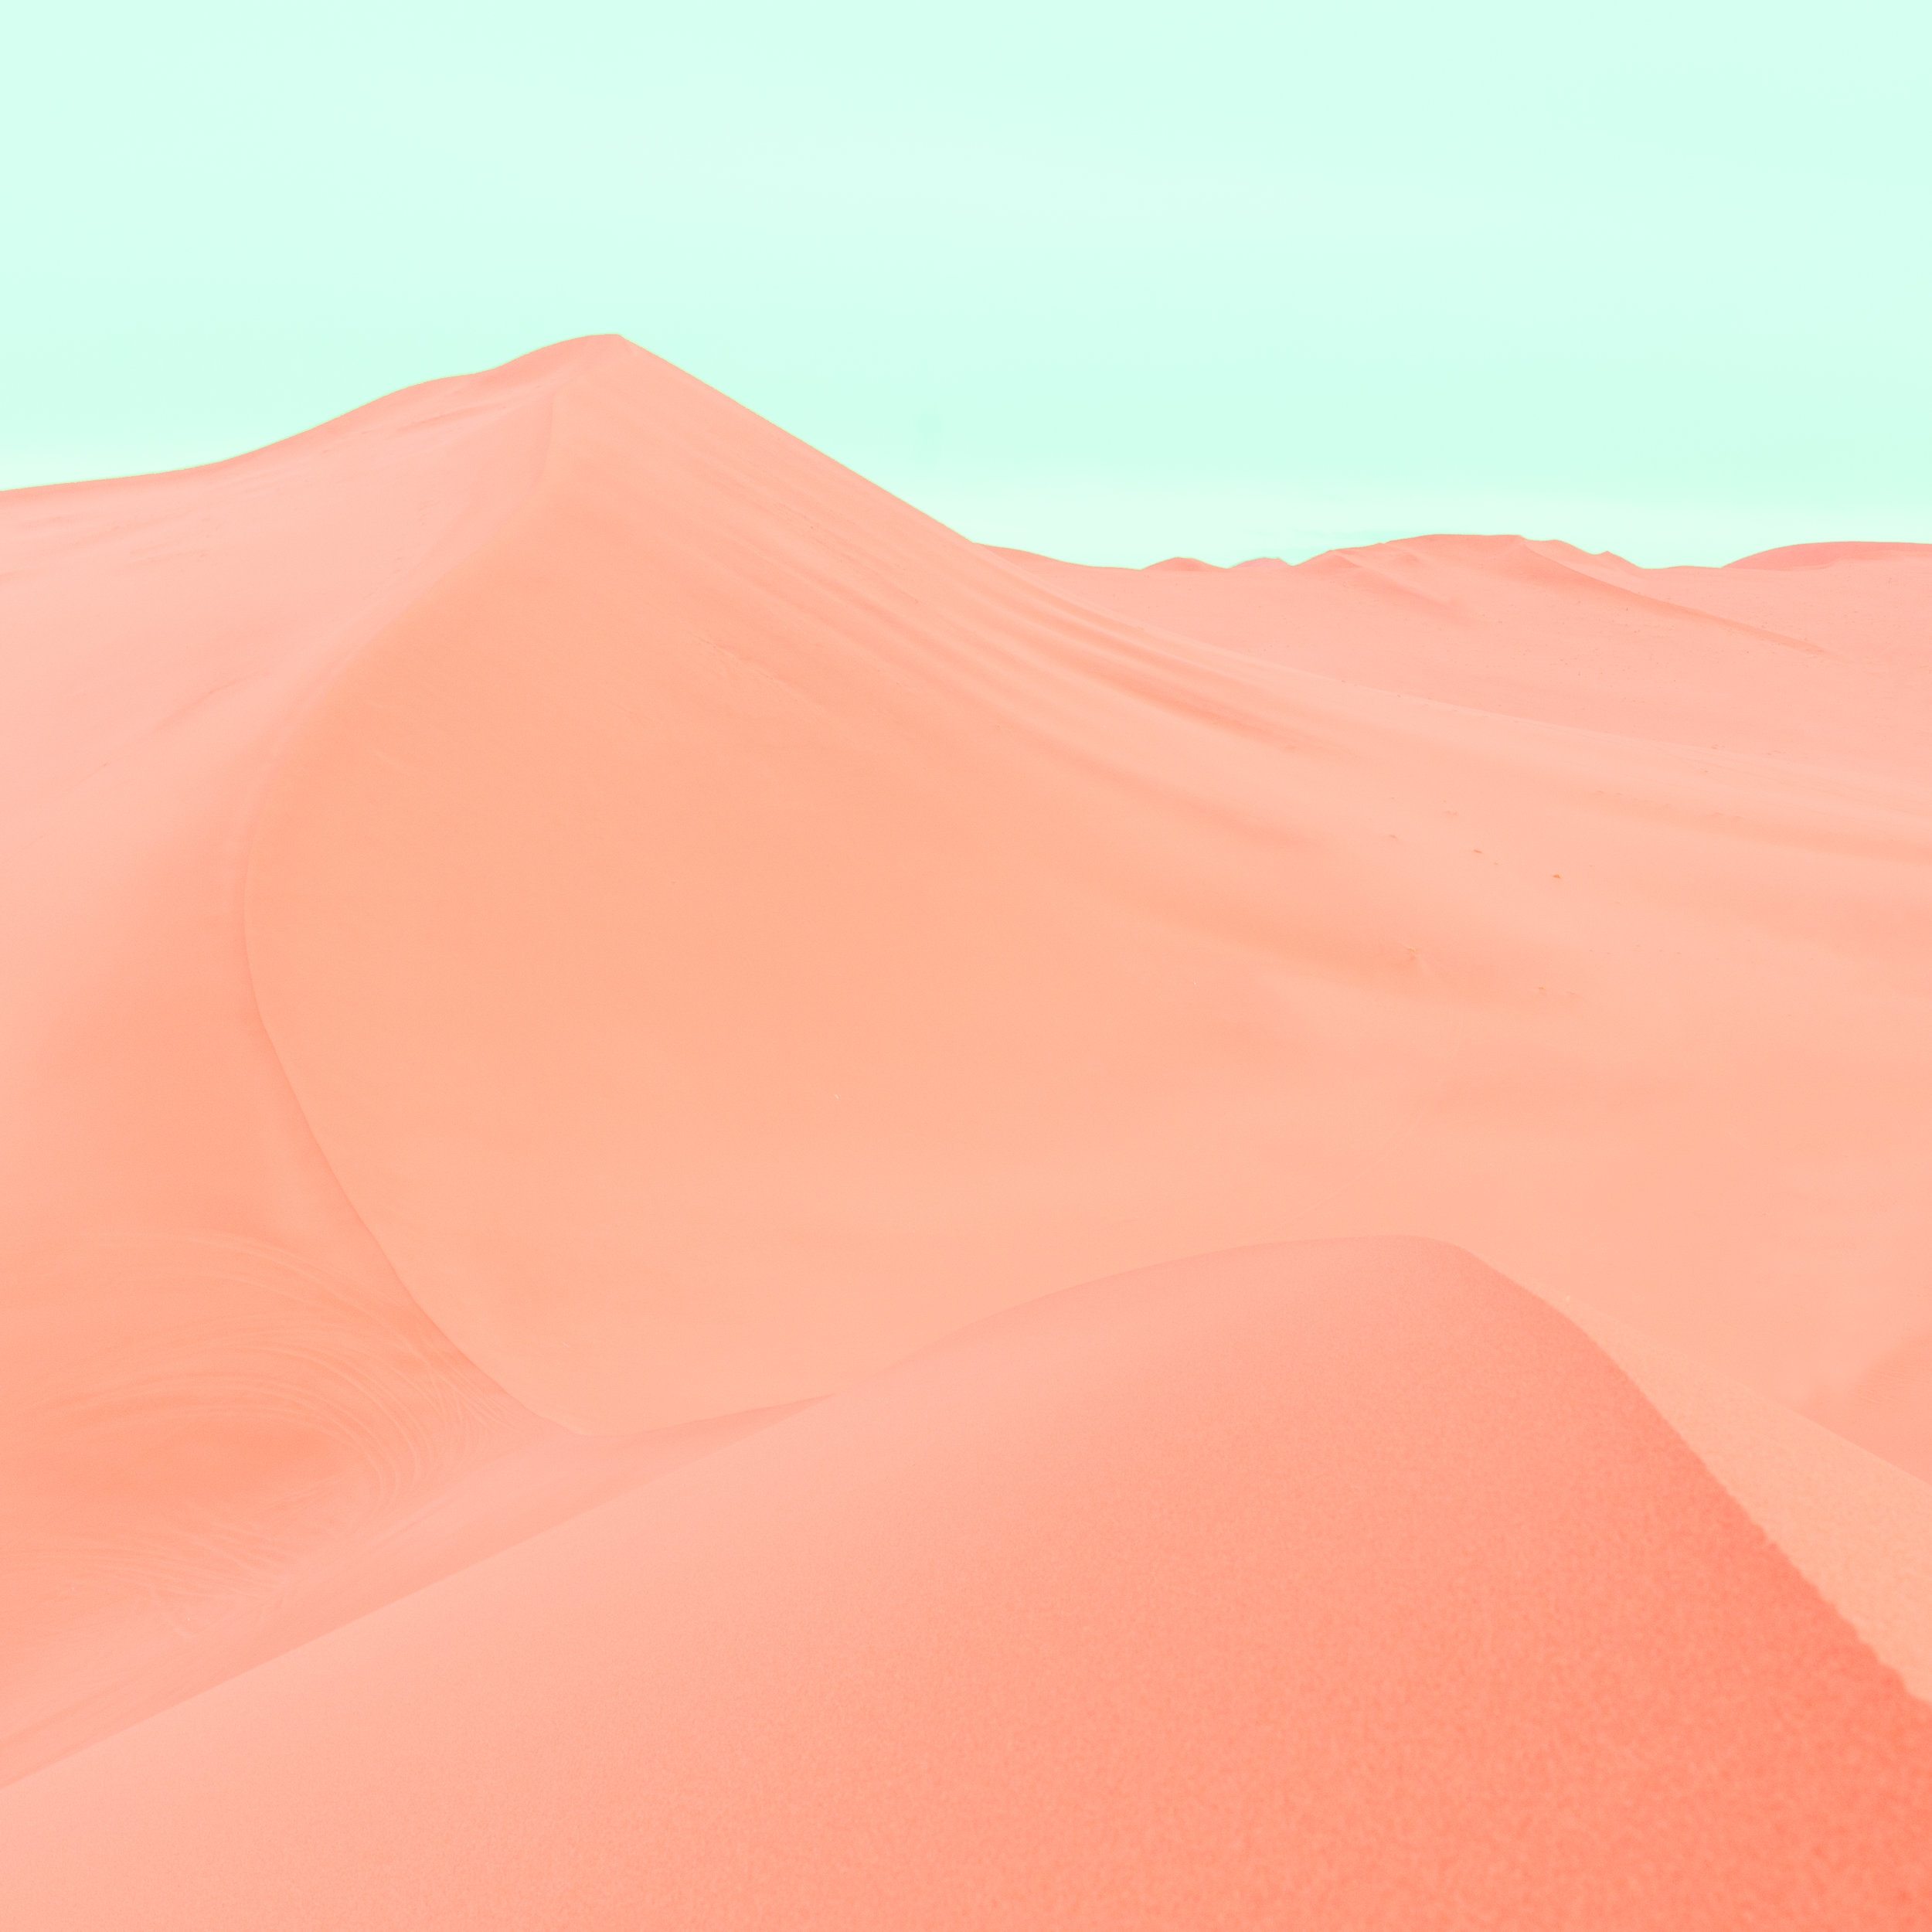 Dunes - Experimenting With Alternative Processing